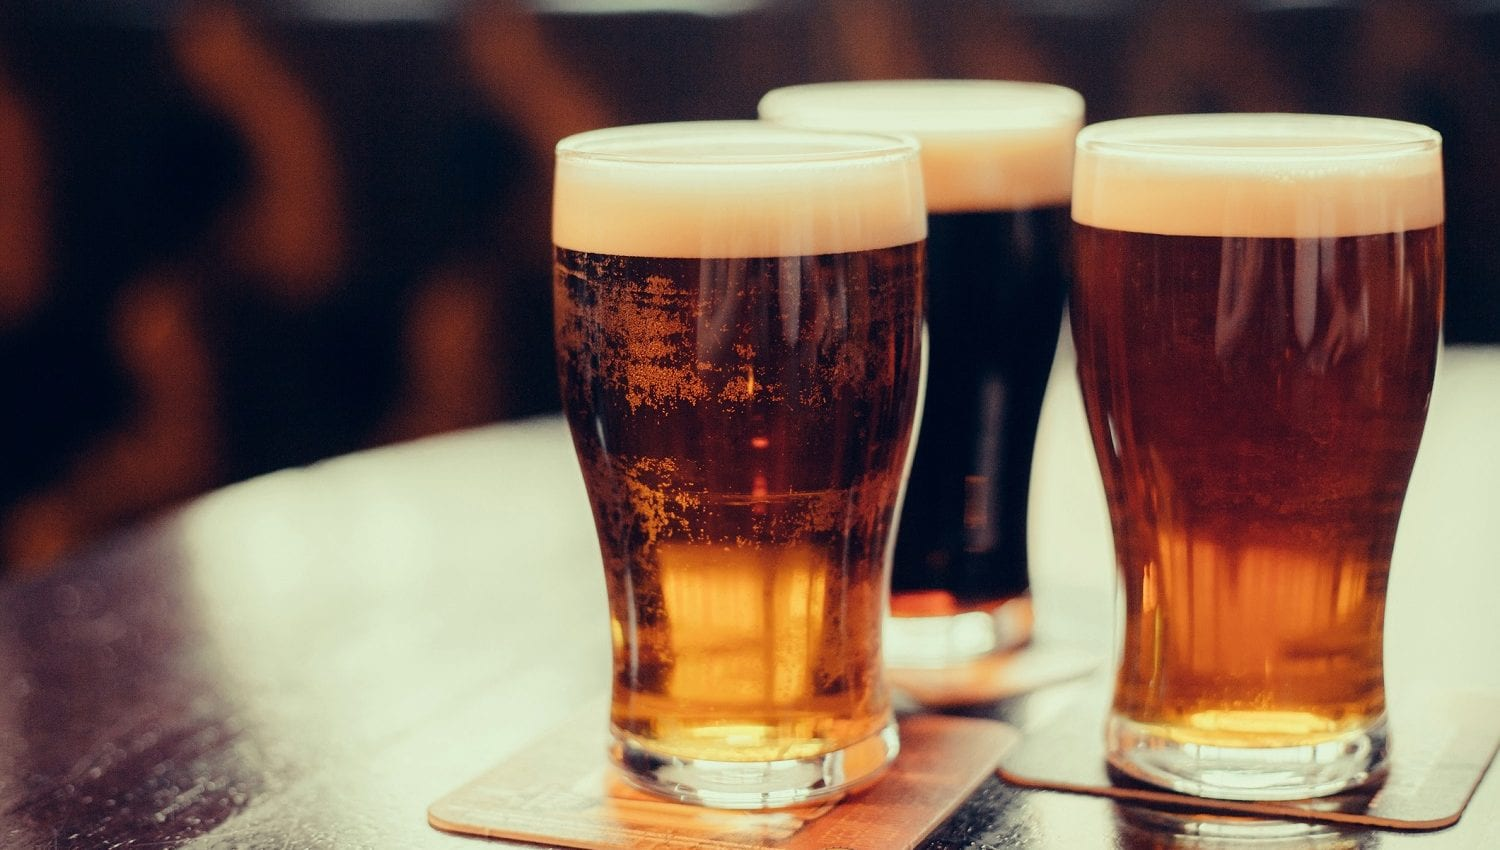 Three glasses of beer in pint glasses